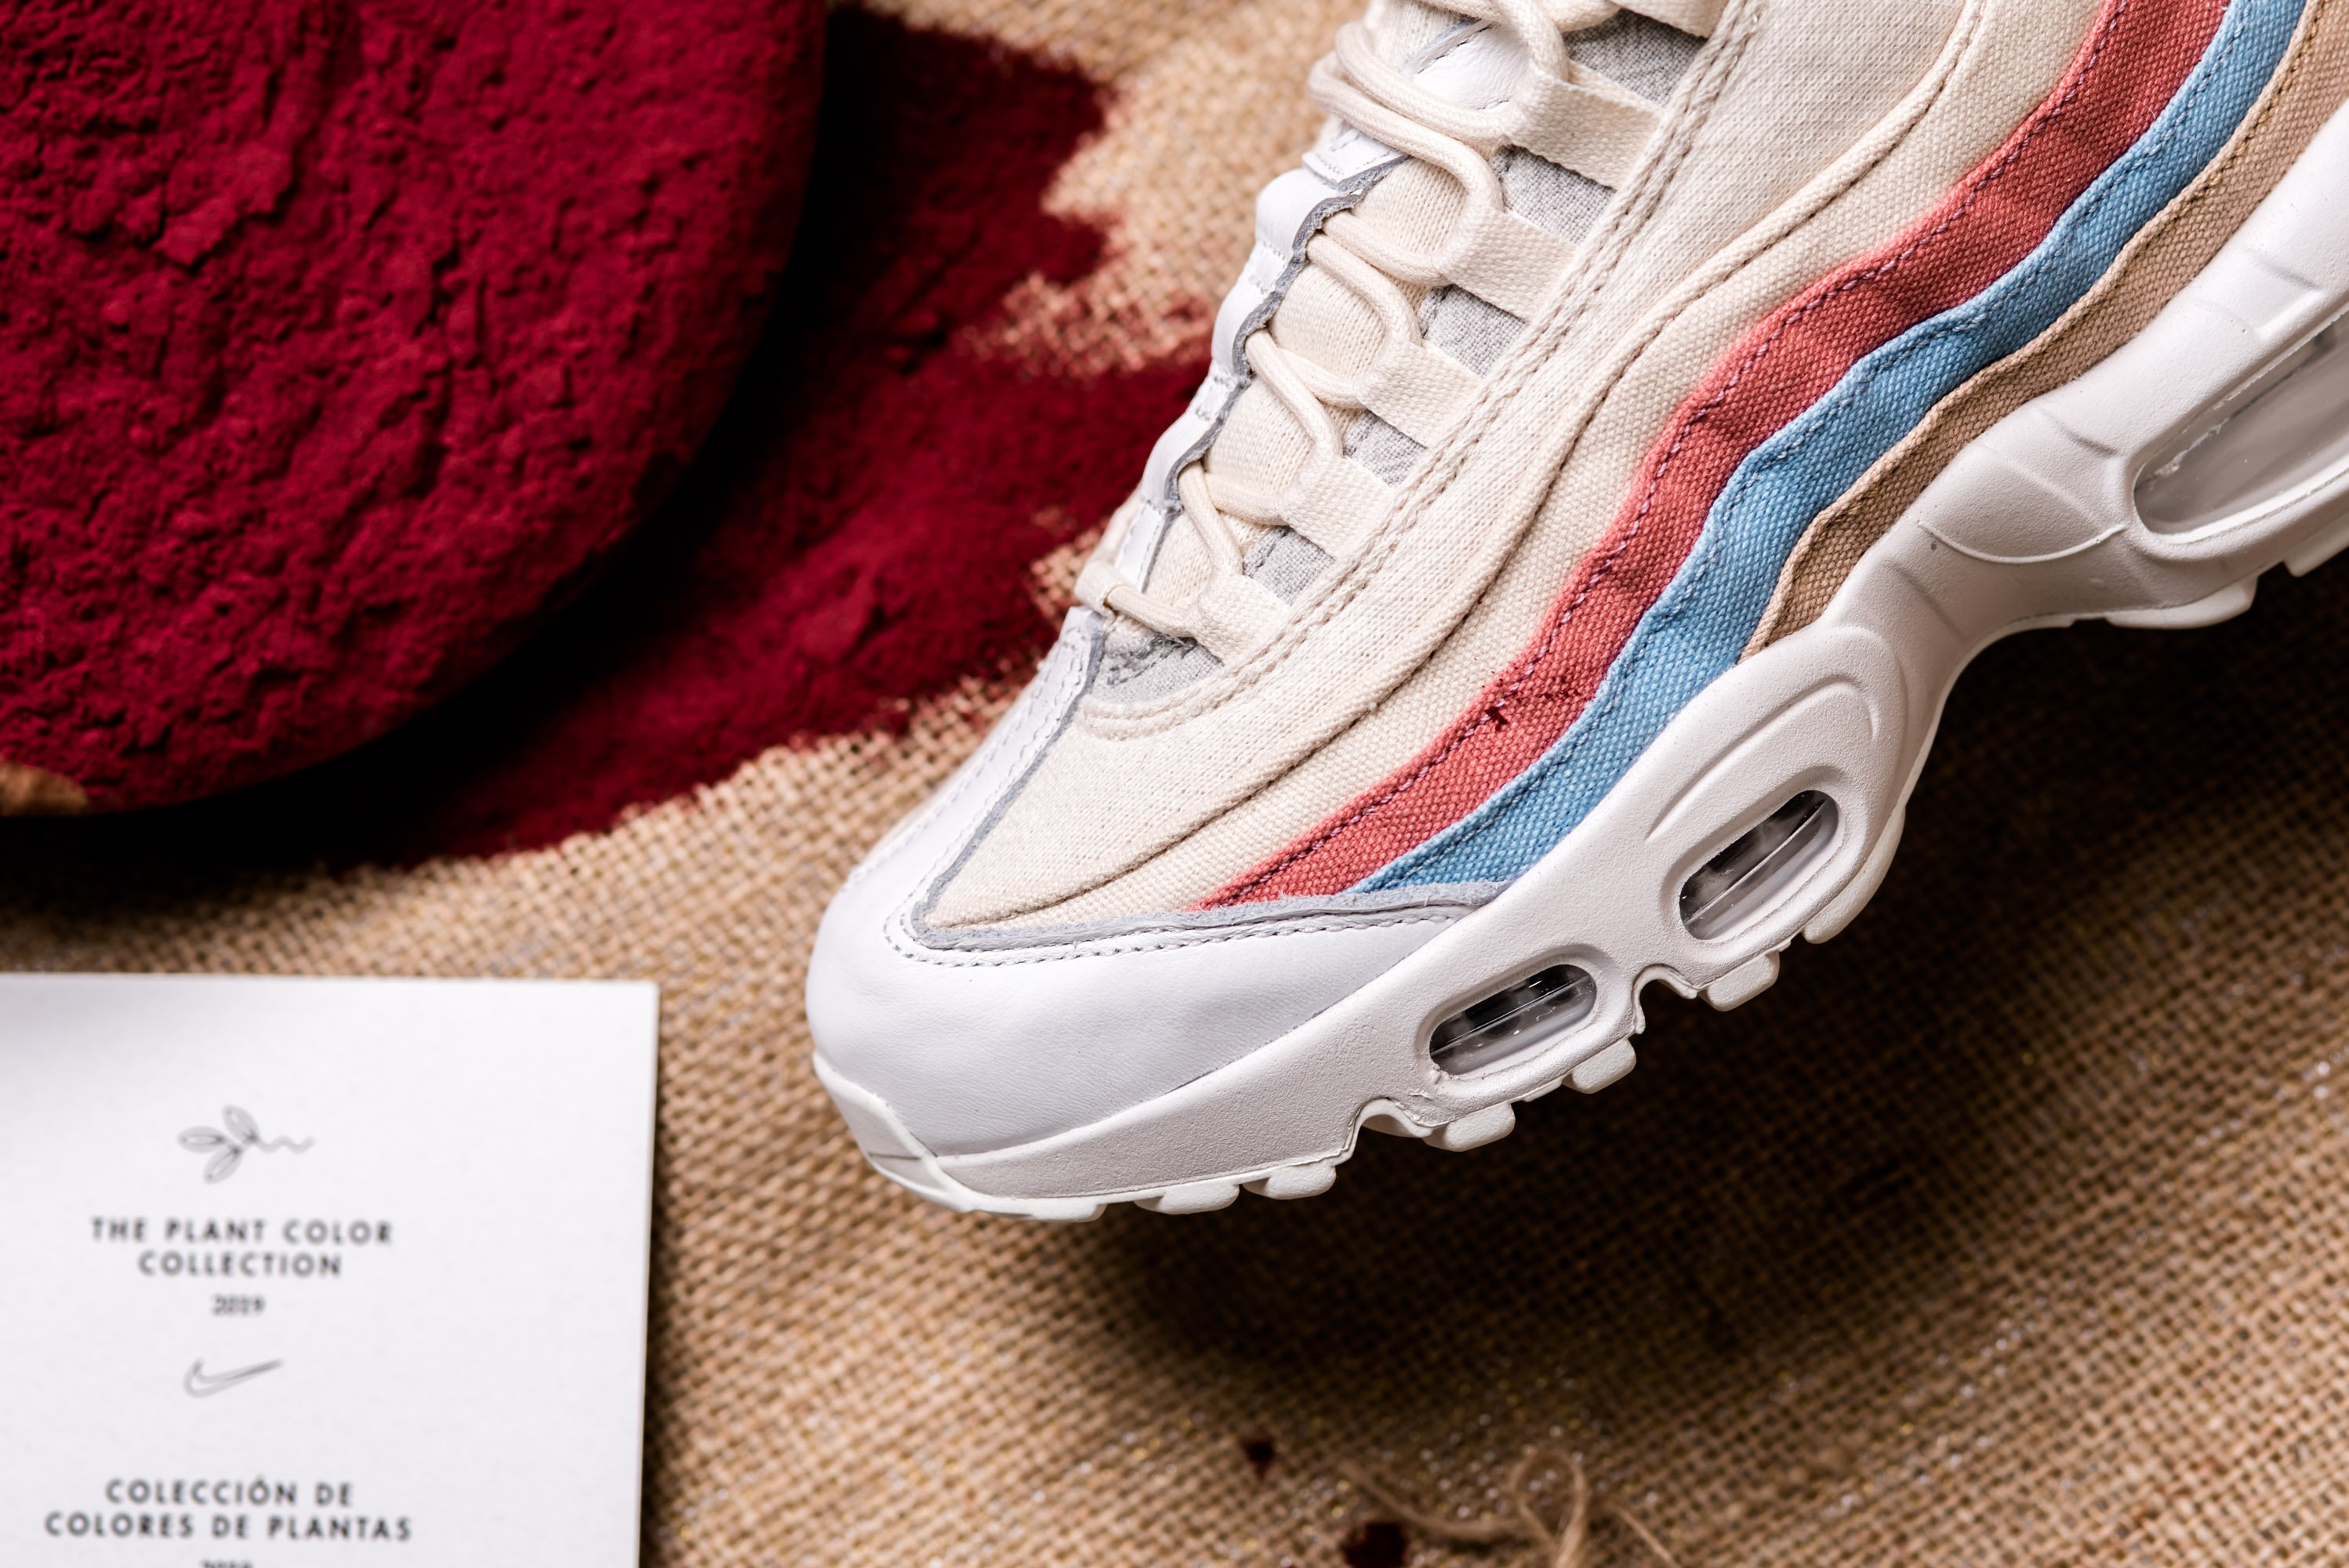 Buy The Nike WMNS Air Max 95 Plant Color Crimson Tint Here